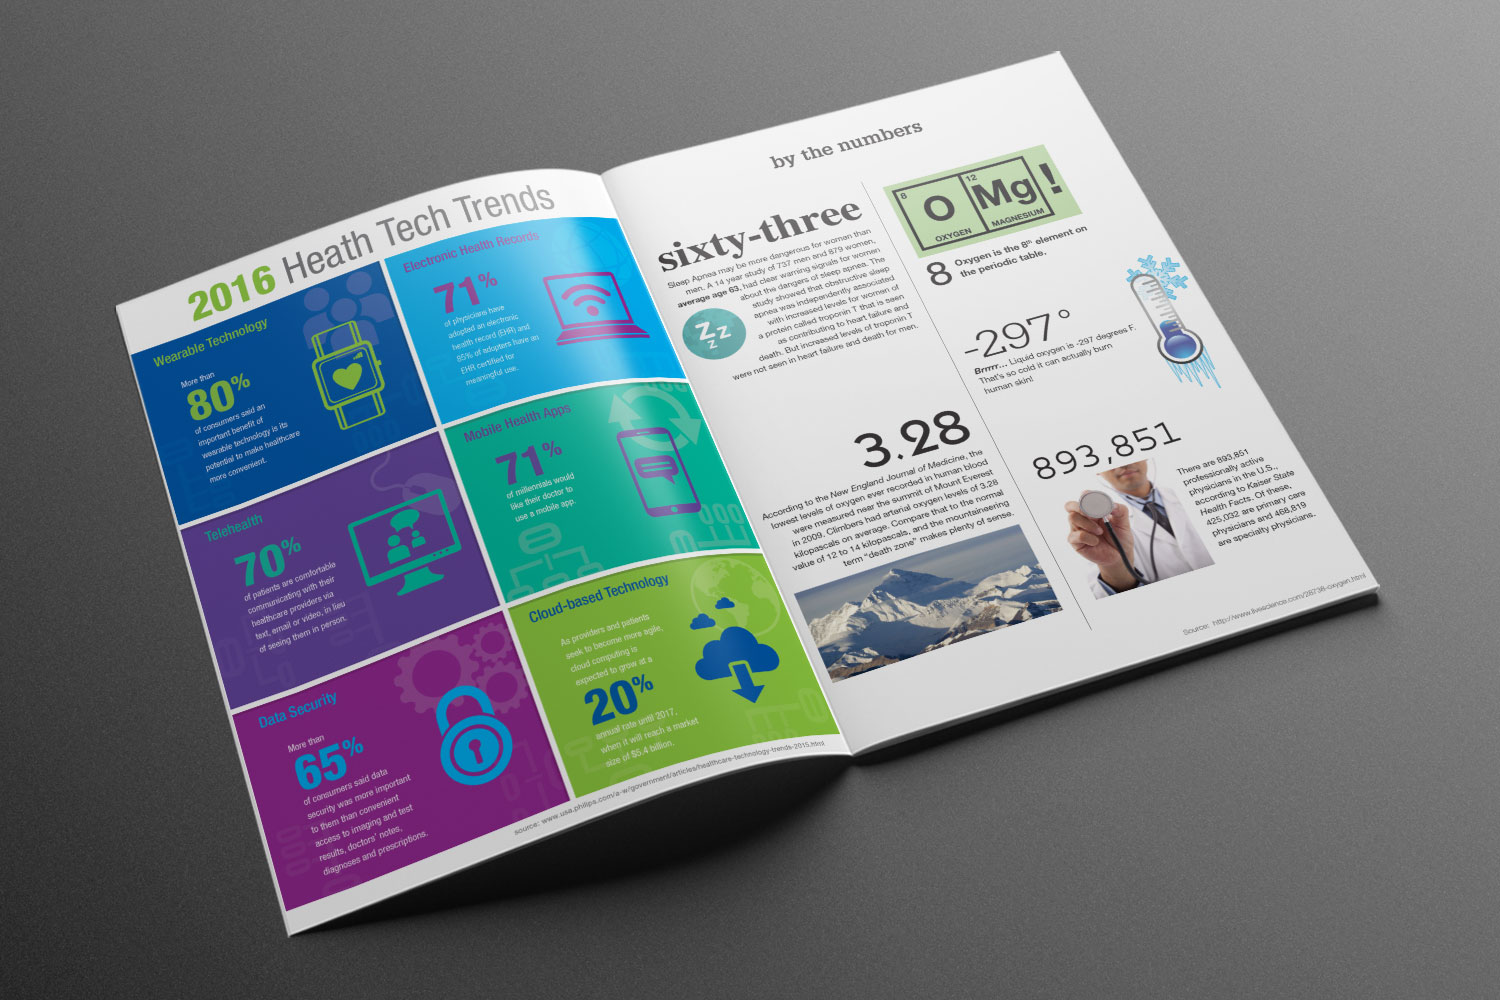 Infographic design and illustration